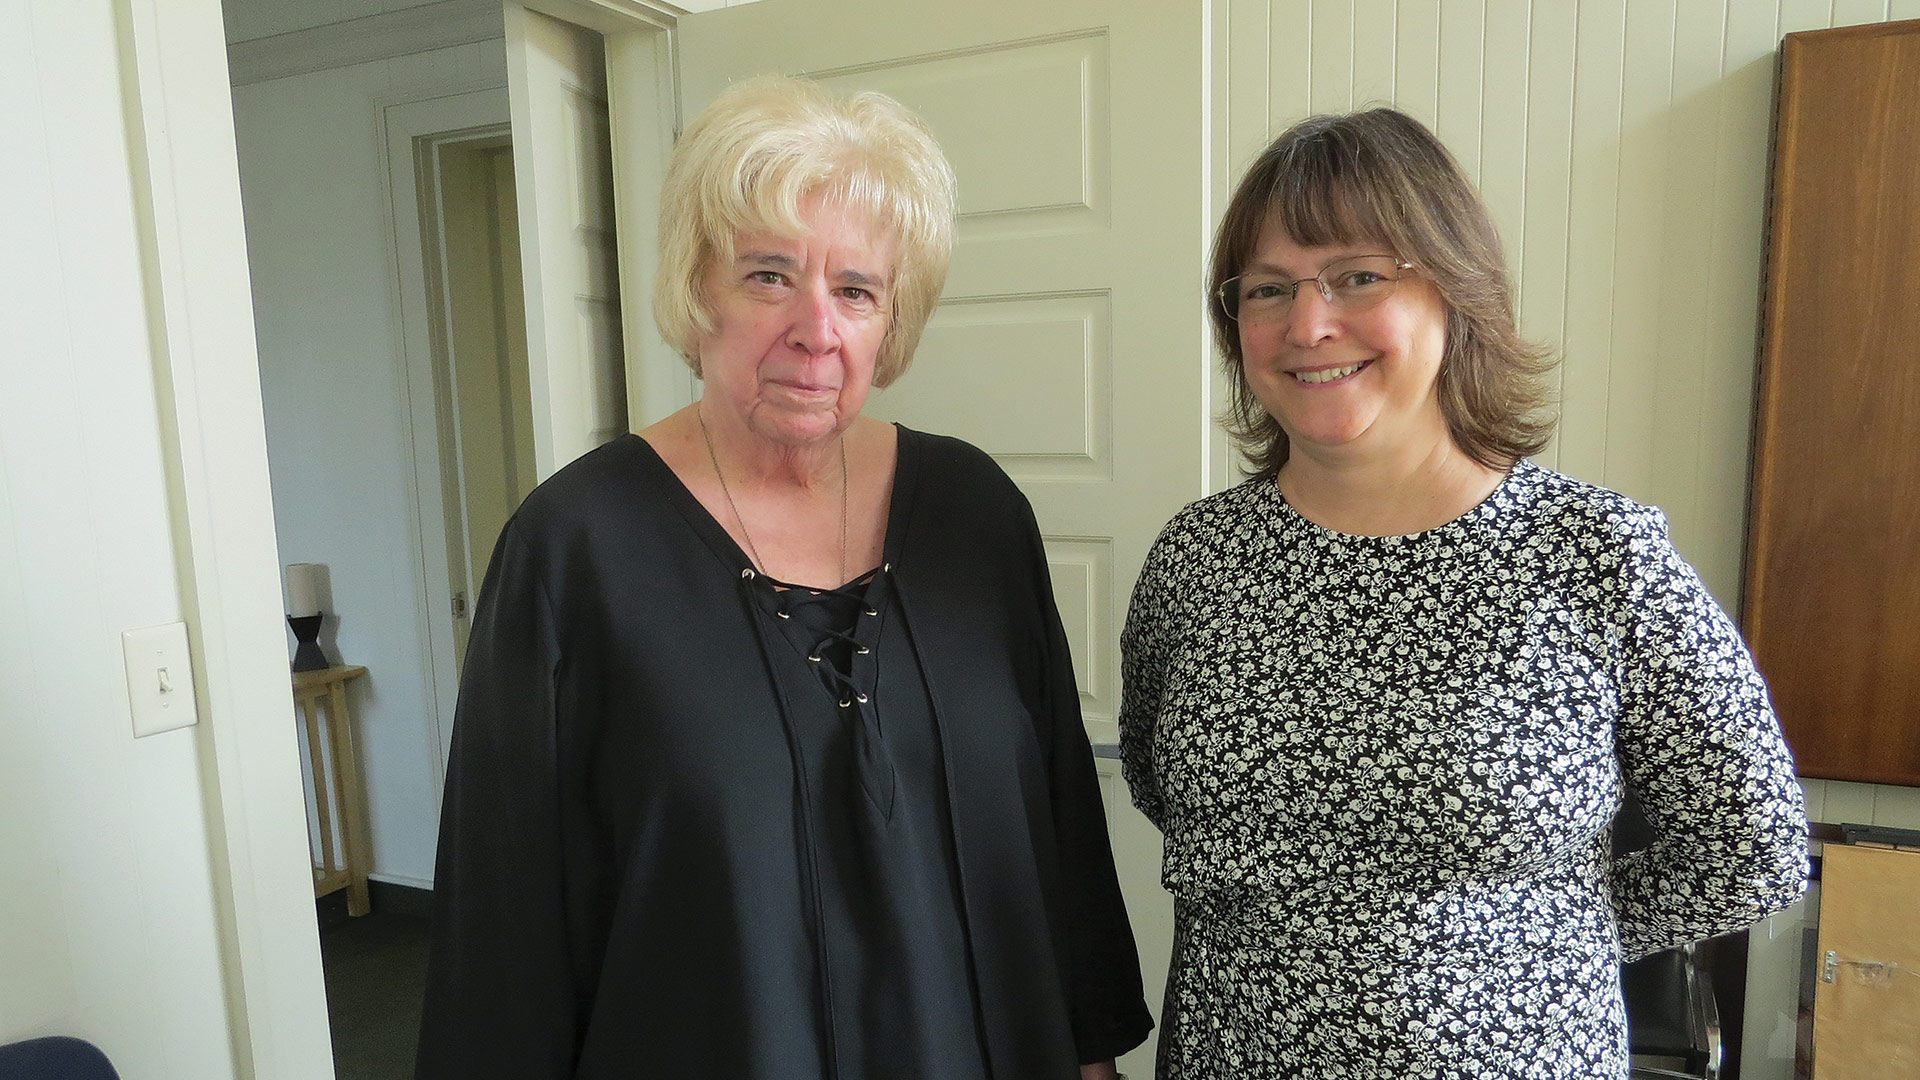 Helen Gobeil with Michele Anstett, president and CEO of Visiting Angels West Springfield.